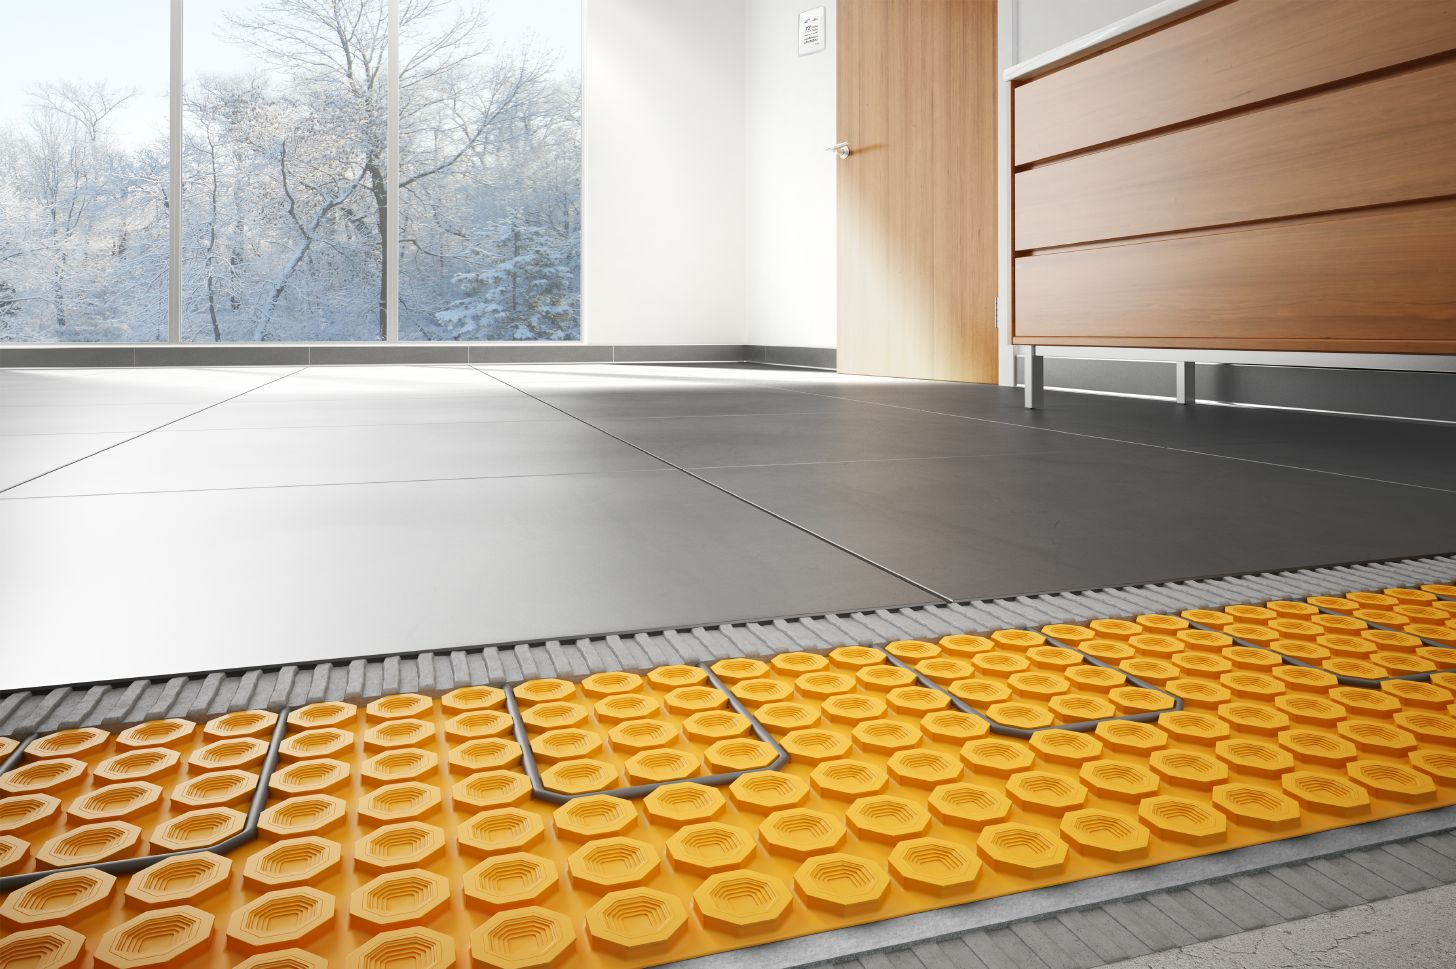 heated floors | schluter.com SQJSZHK